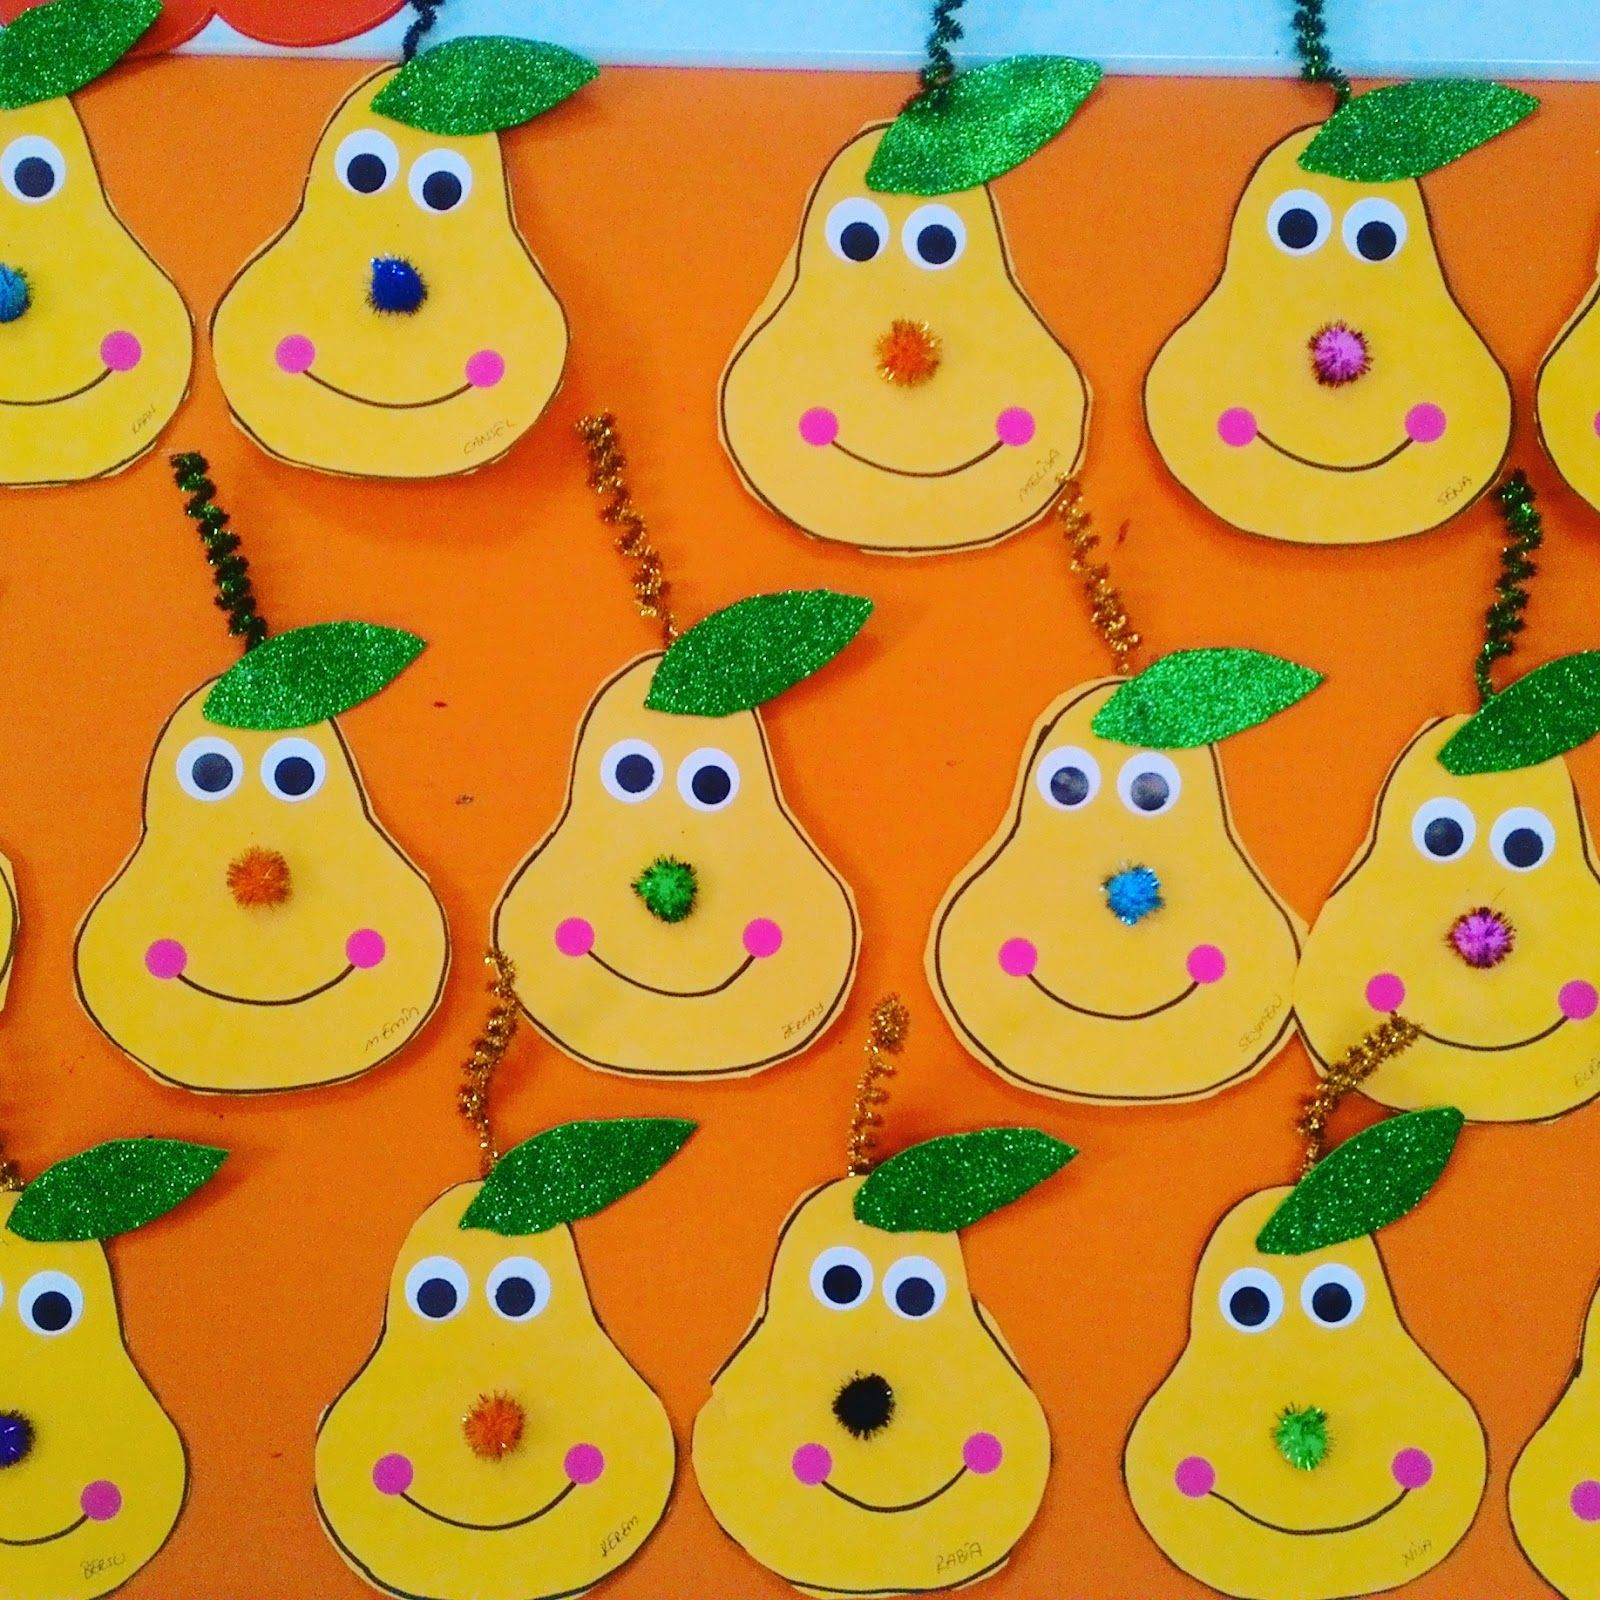 Pear Craft Idea For Kids